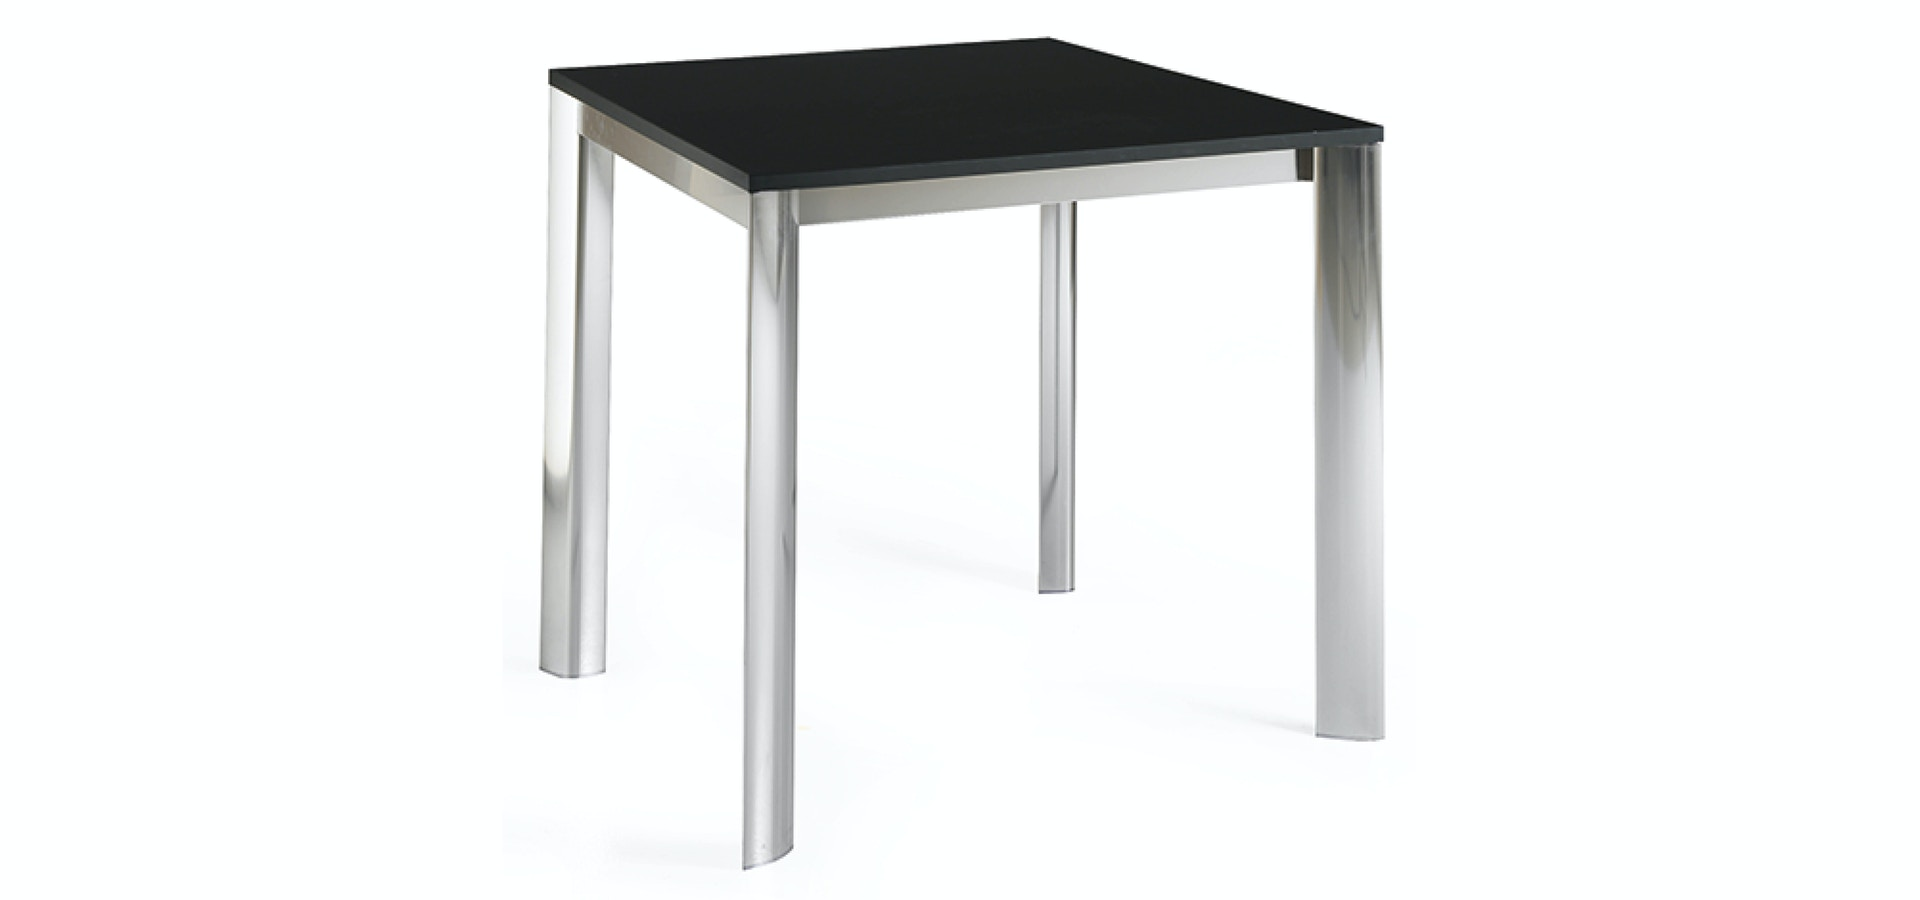 Tables Stosa - Model Cubotto 9277